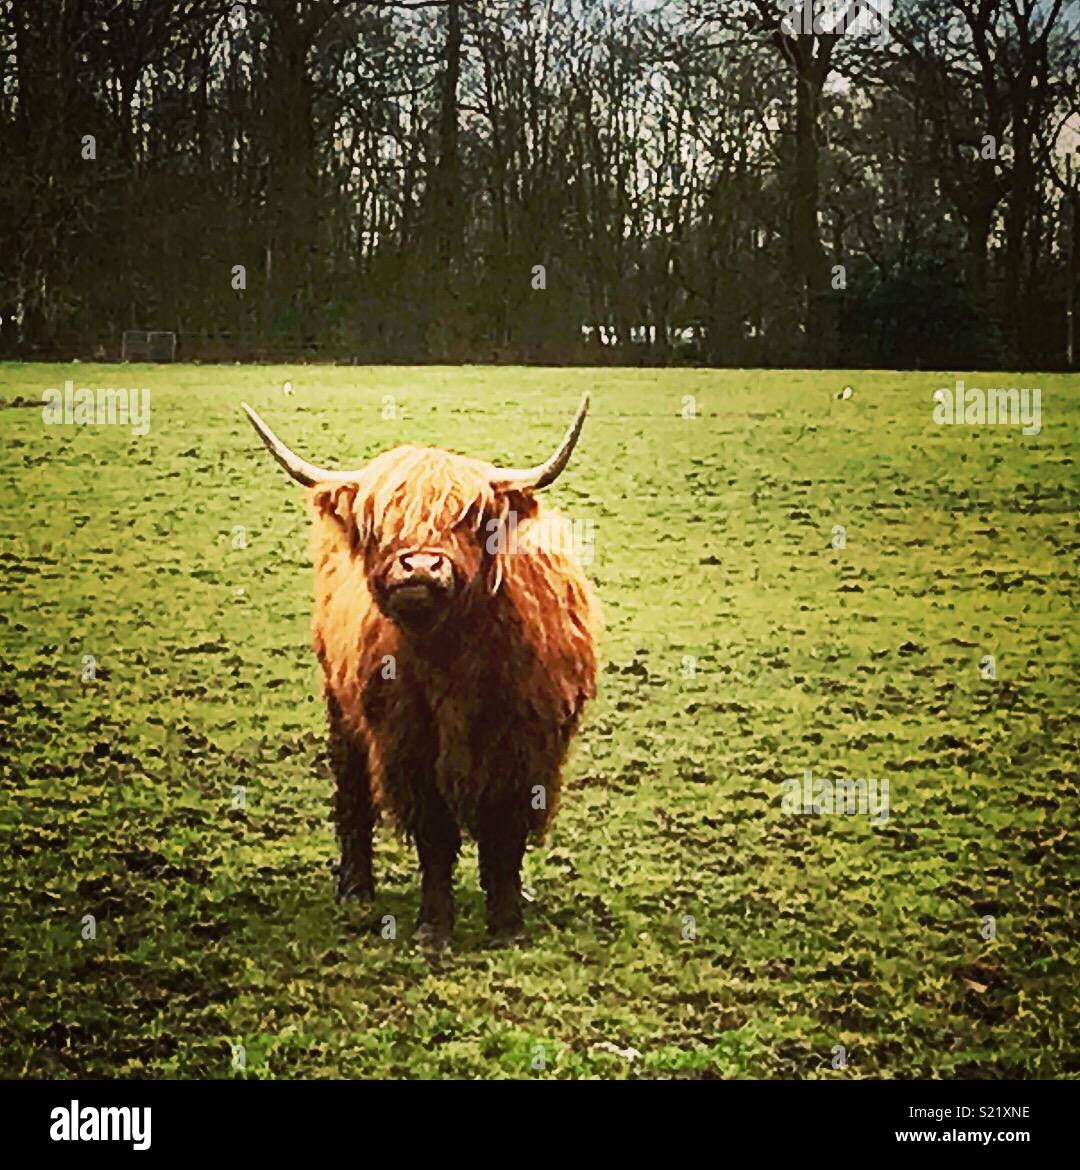 Hamish the cow - Stock Image